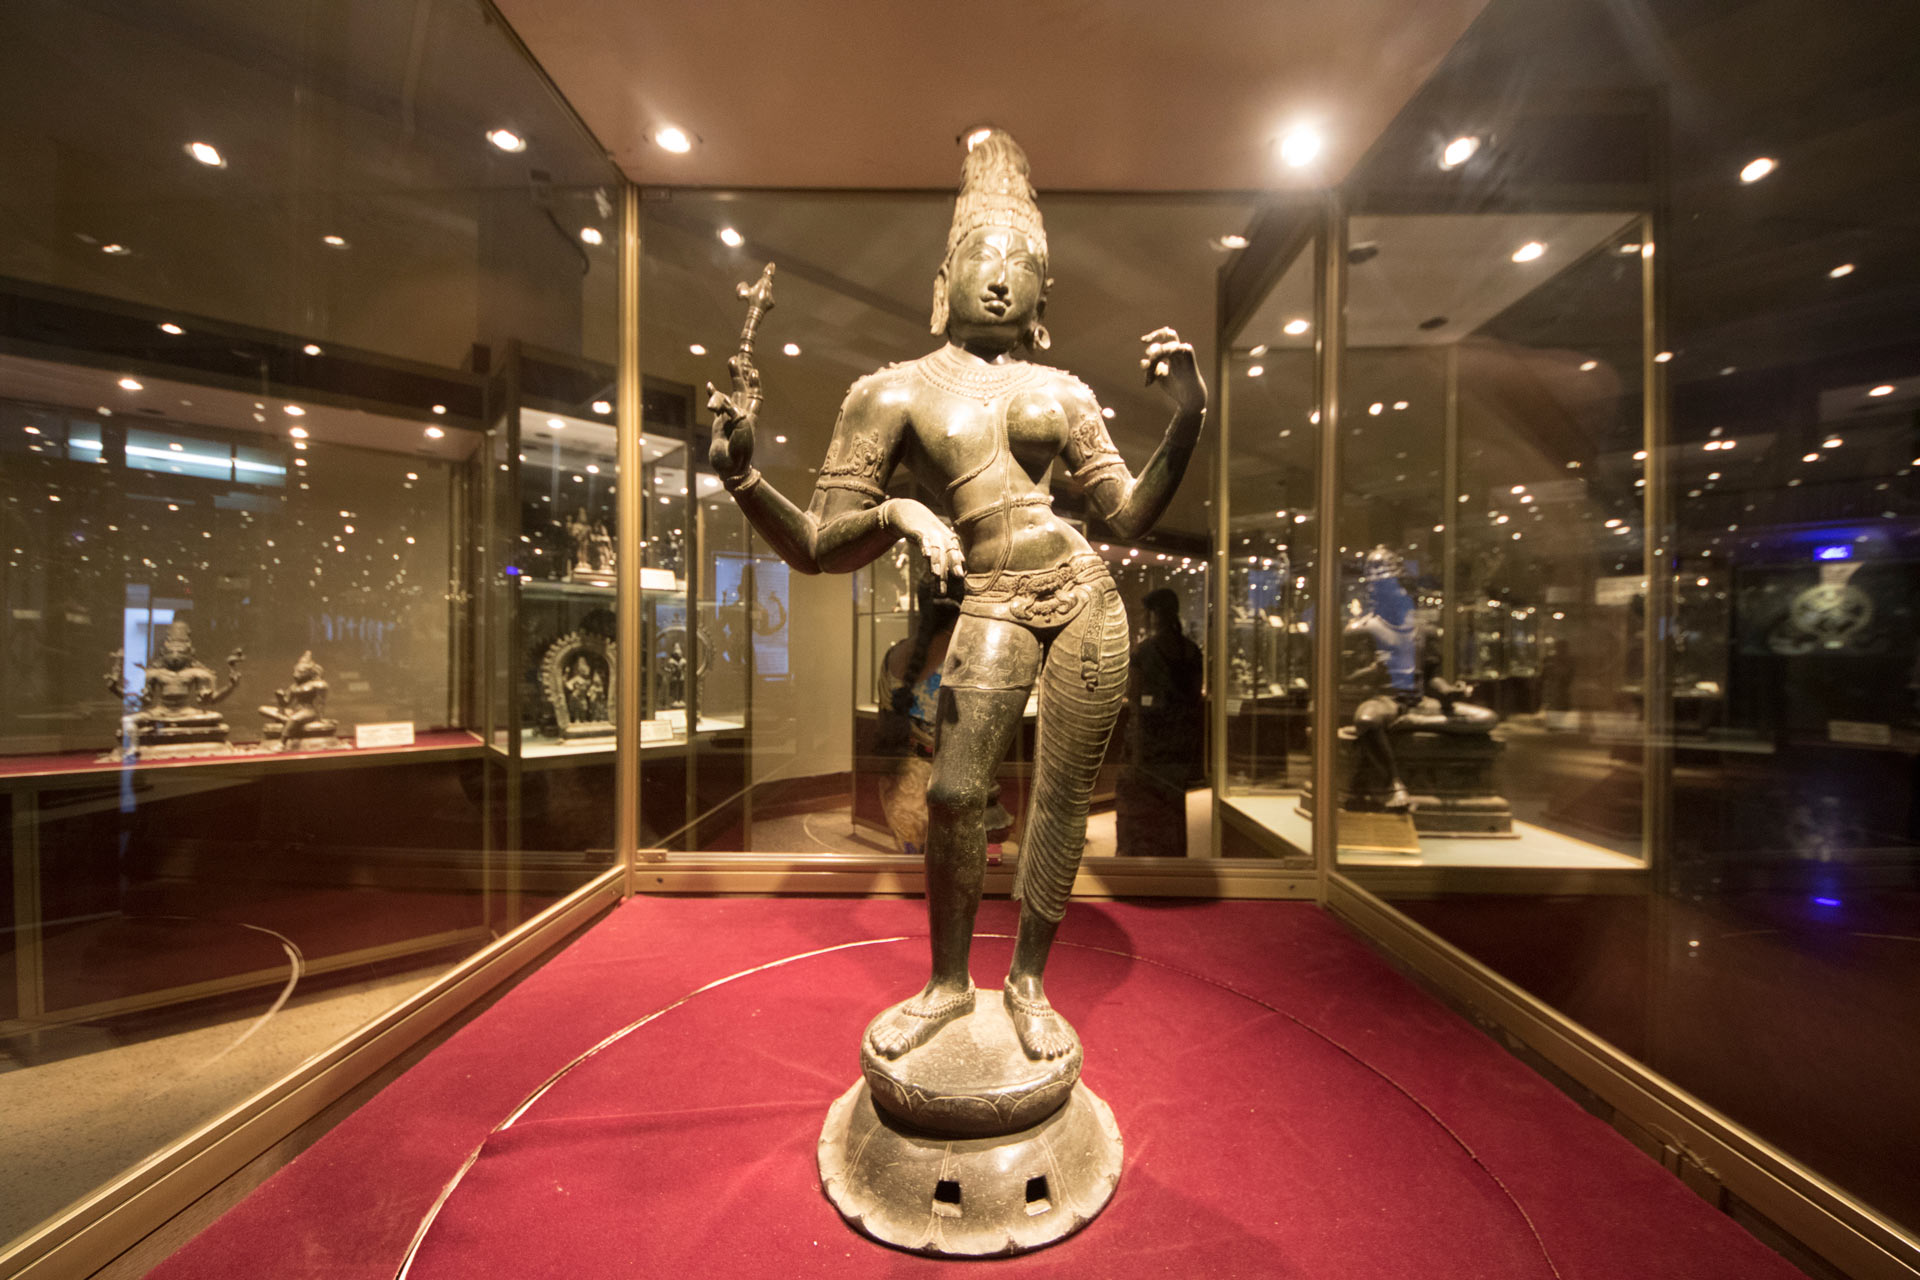 Arthanarishvara from Tiruvengadu, dating to the 11th century AD, on display at the Government Museum (Madras Museum), Chennai, Tamil Nadu, India